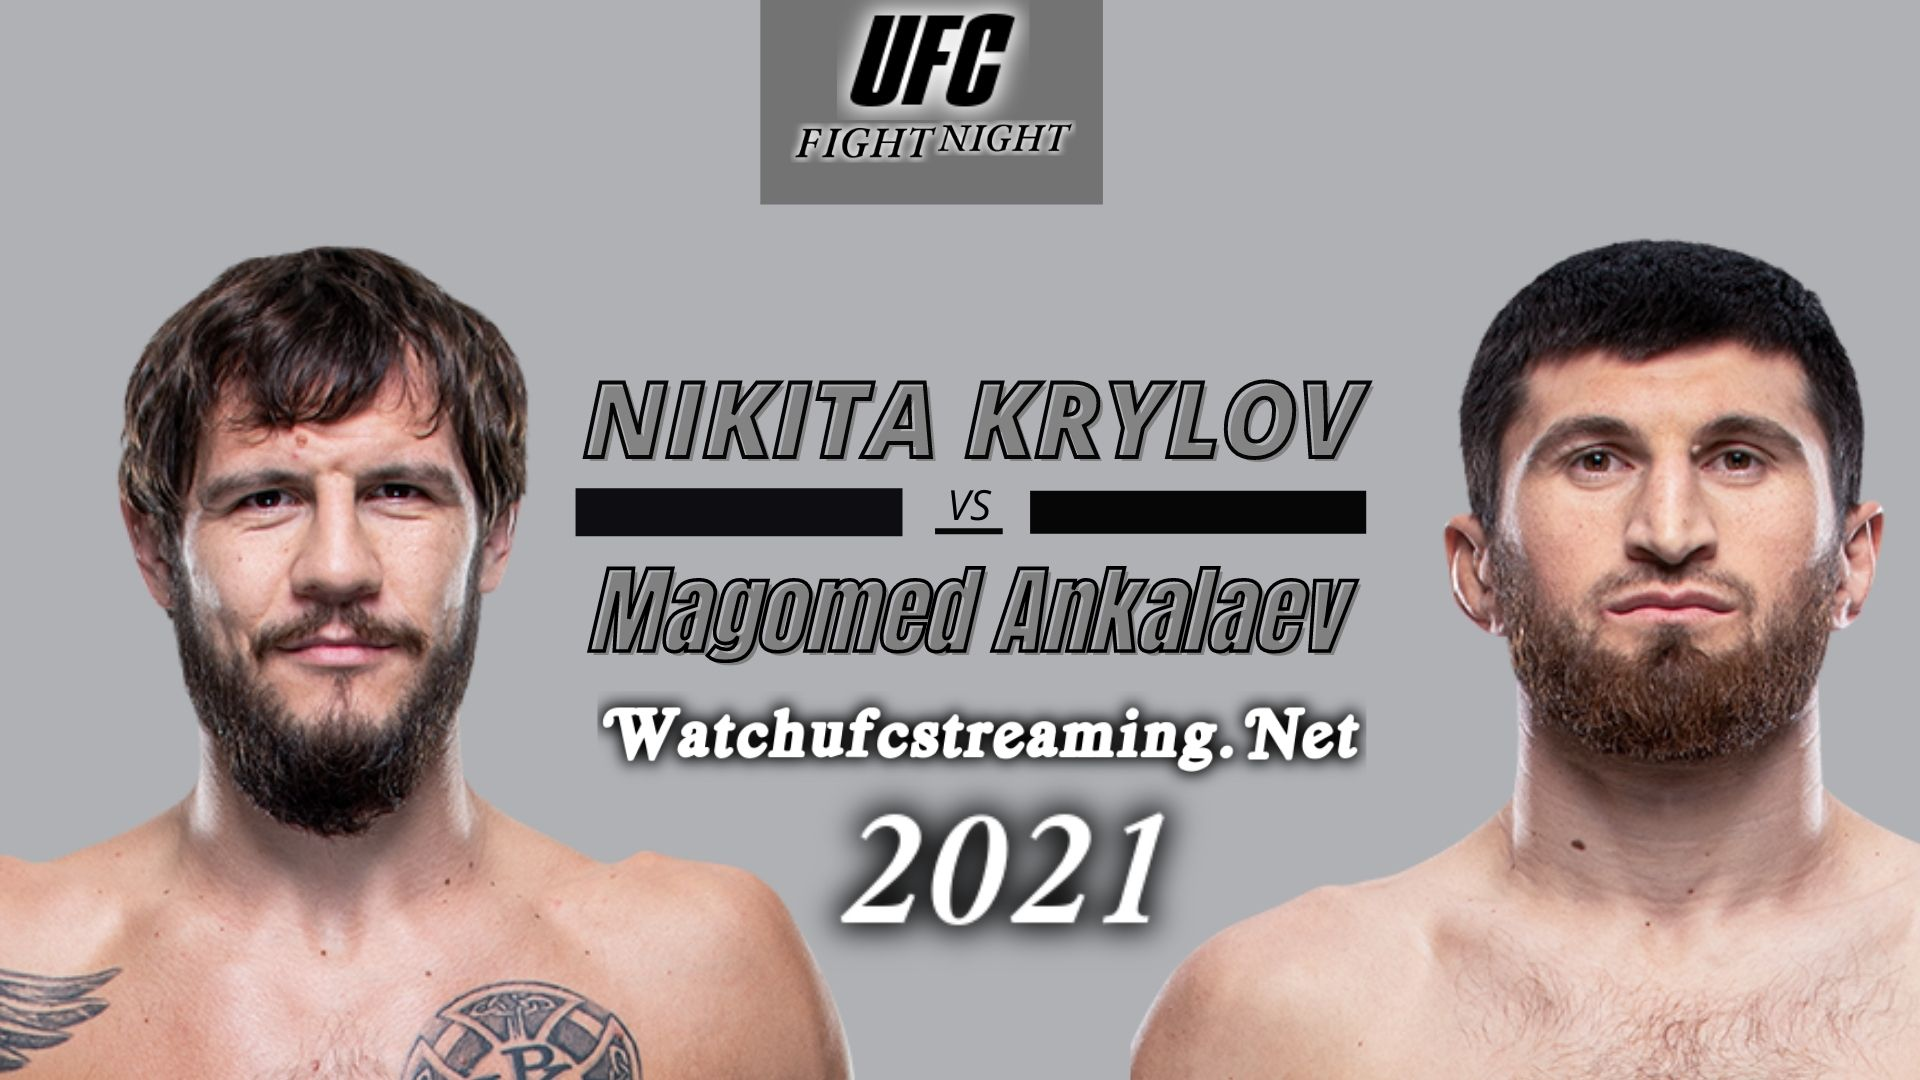 UFC - Nikita Krylov Vs Magomed Ankalaev Highlights 2021 | Heavyweight